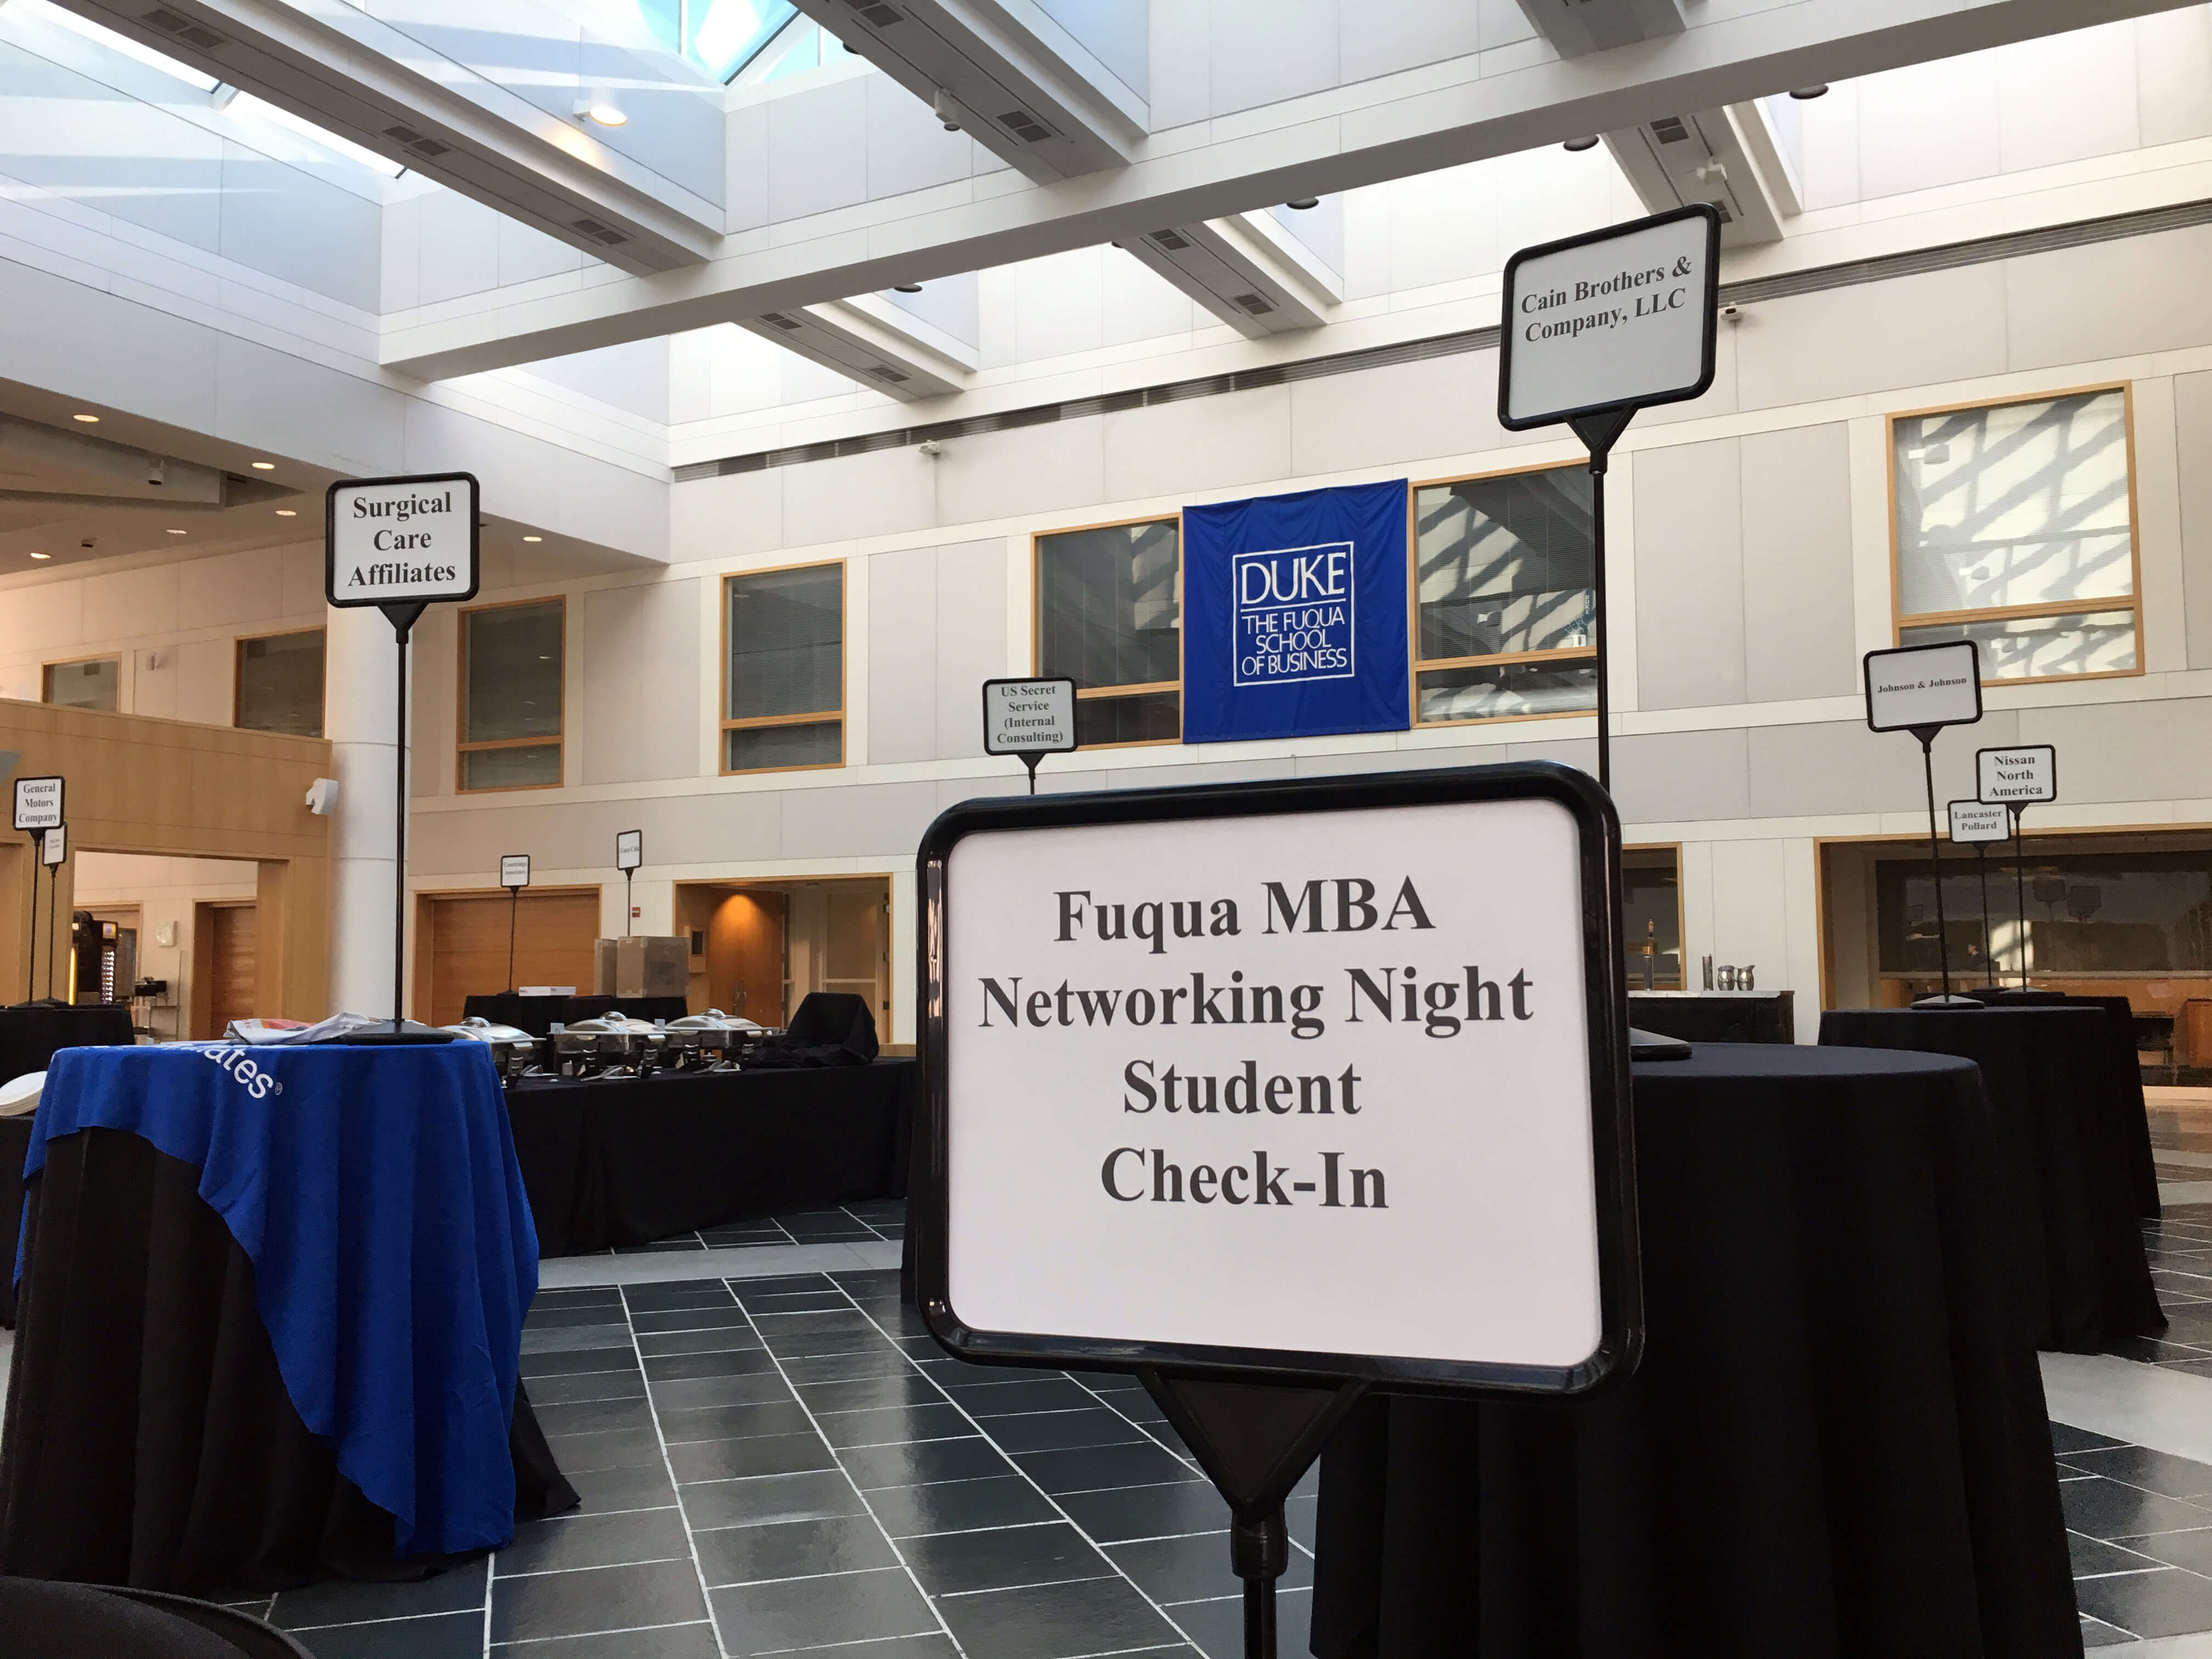 investment banking firms among those listed on signs for a networking session in Fuqua's Fox Center